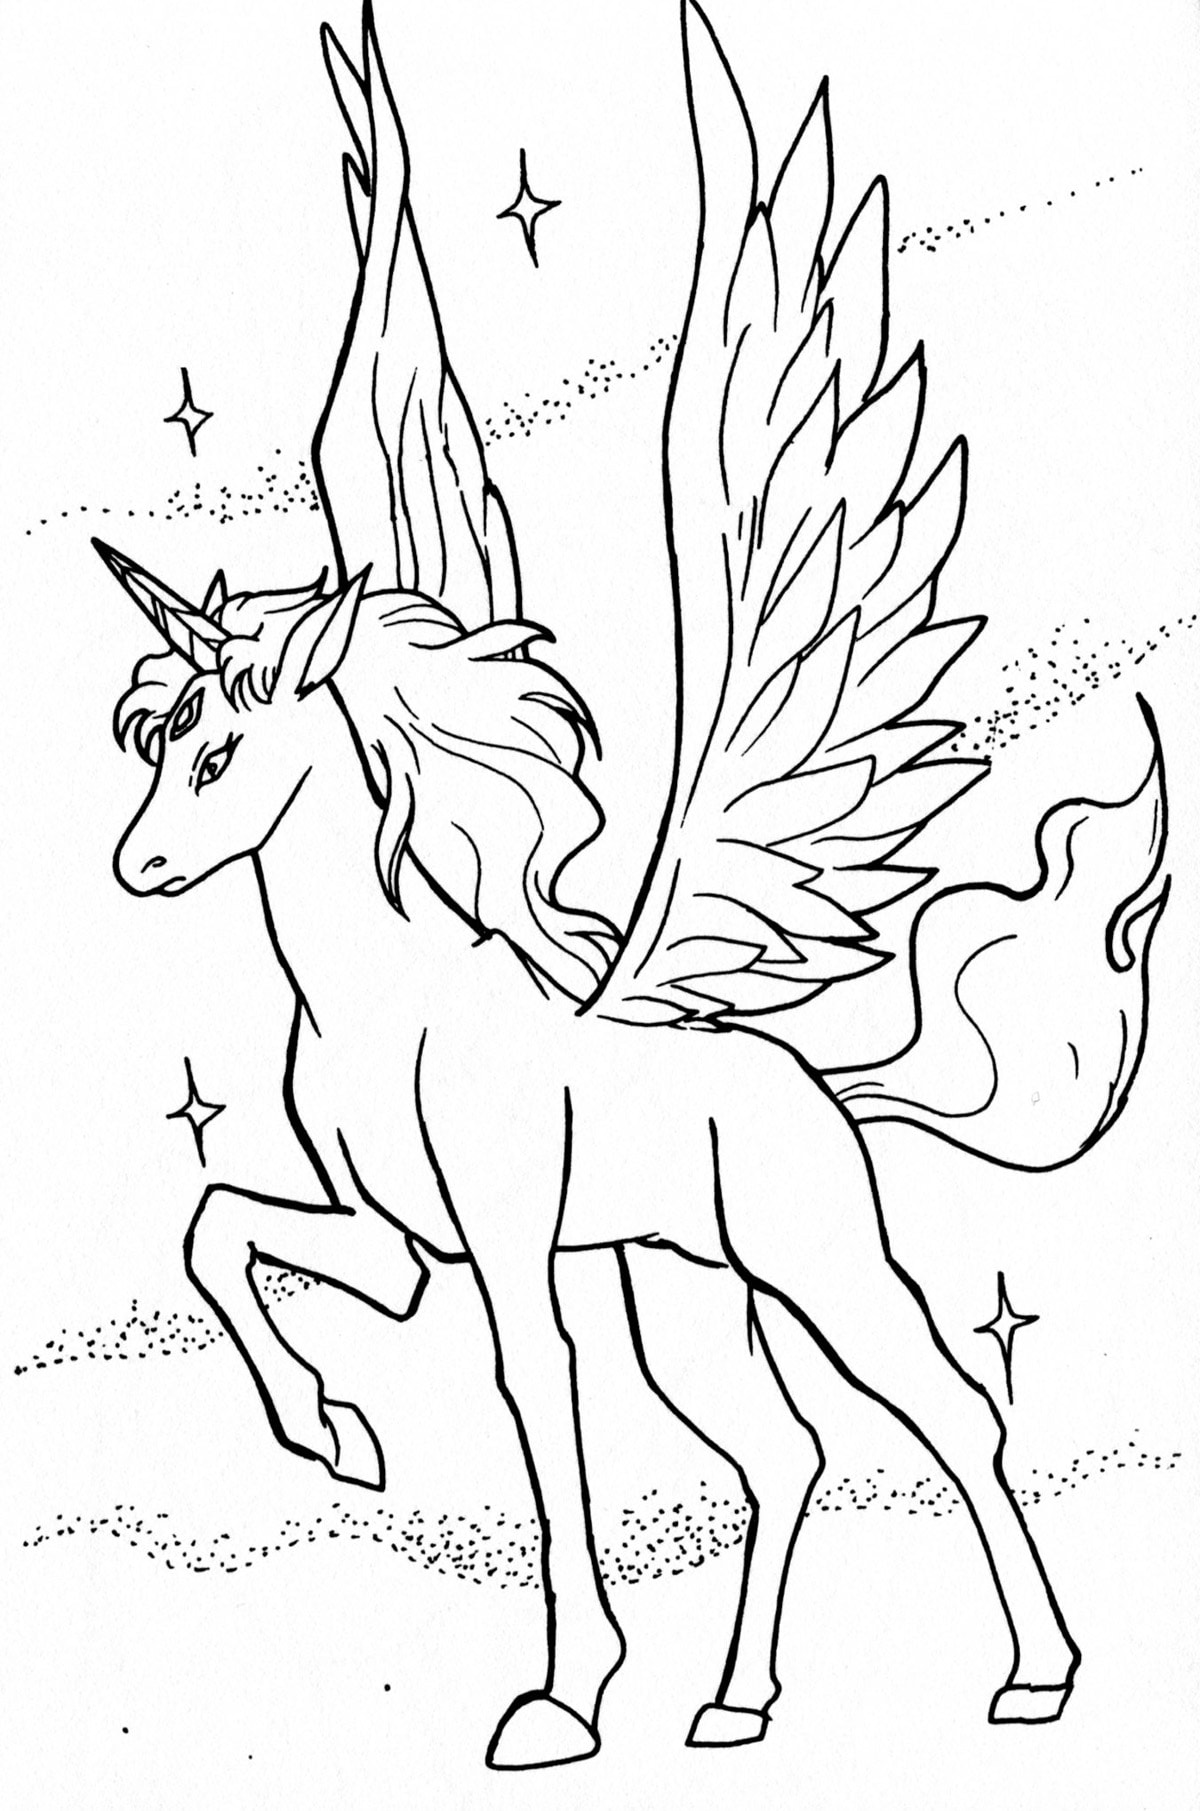 coloring pages of unicorns unicorn coloring pages free download on clipartmag pages unicorns coloring of